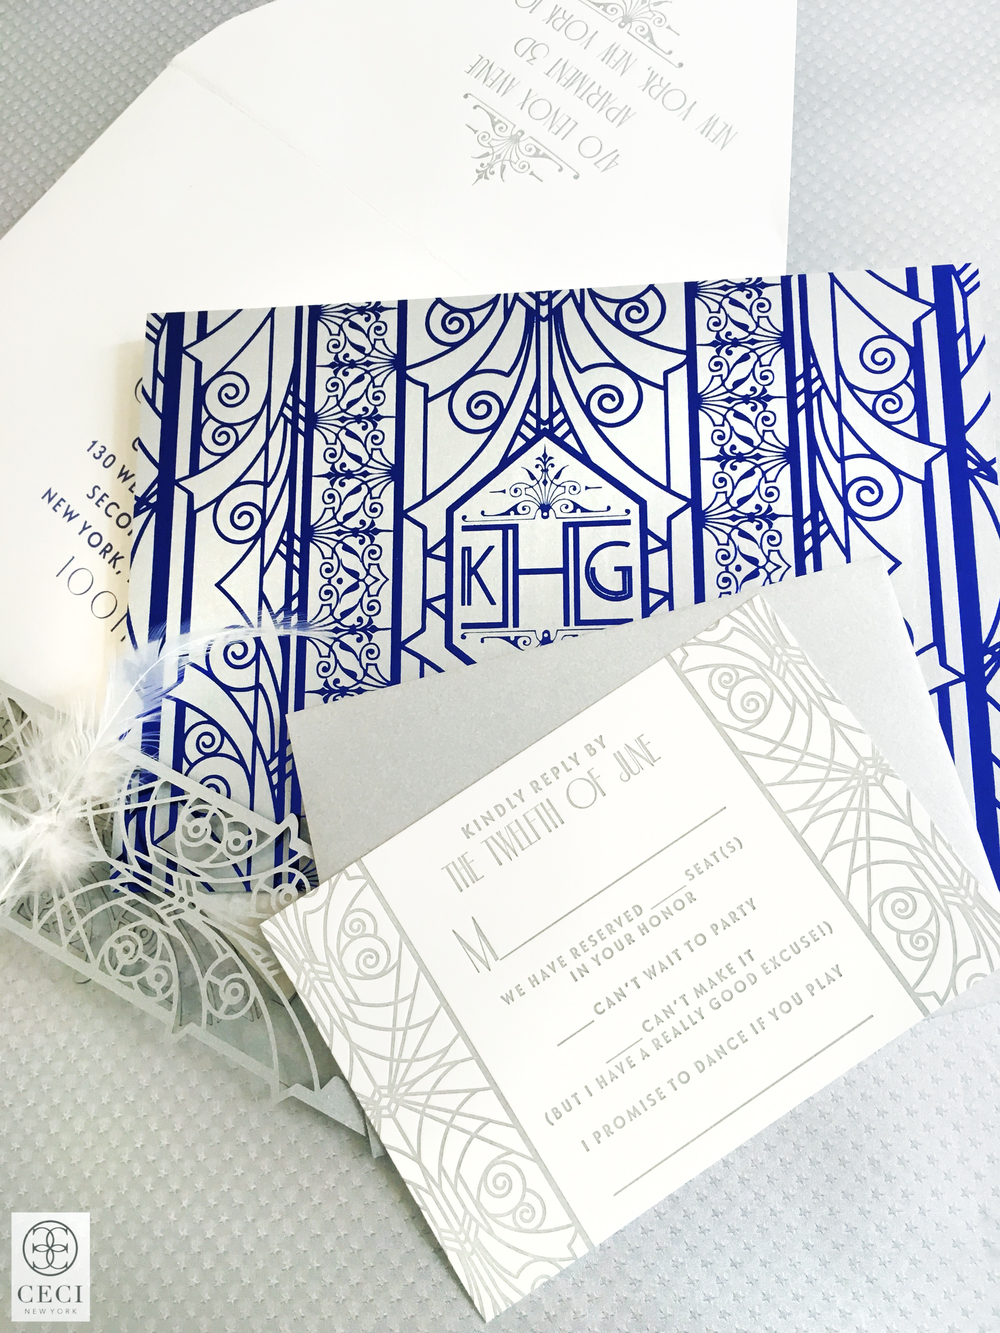 Ceci_New_York_New_Jersey_Invitations_Wedding_New_York_Elegance_Silver_Blue_Letterpress_Deco_Classic_Foil_Stamping_Custom_Couture_Personalized-38.jpg